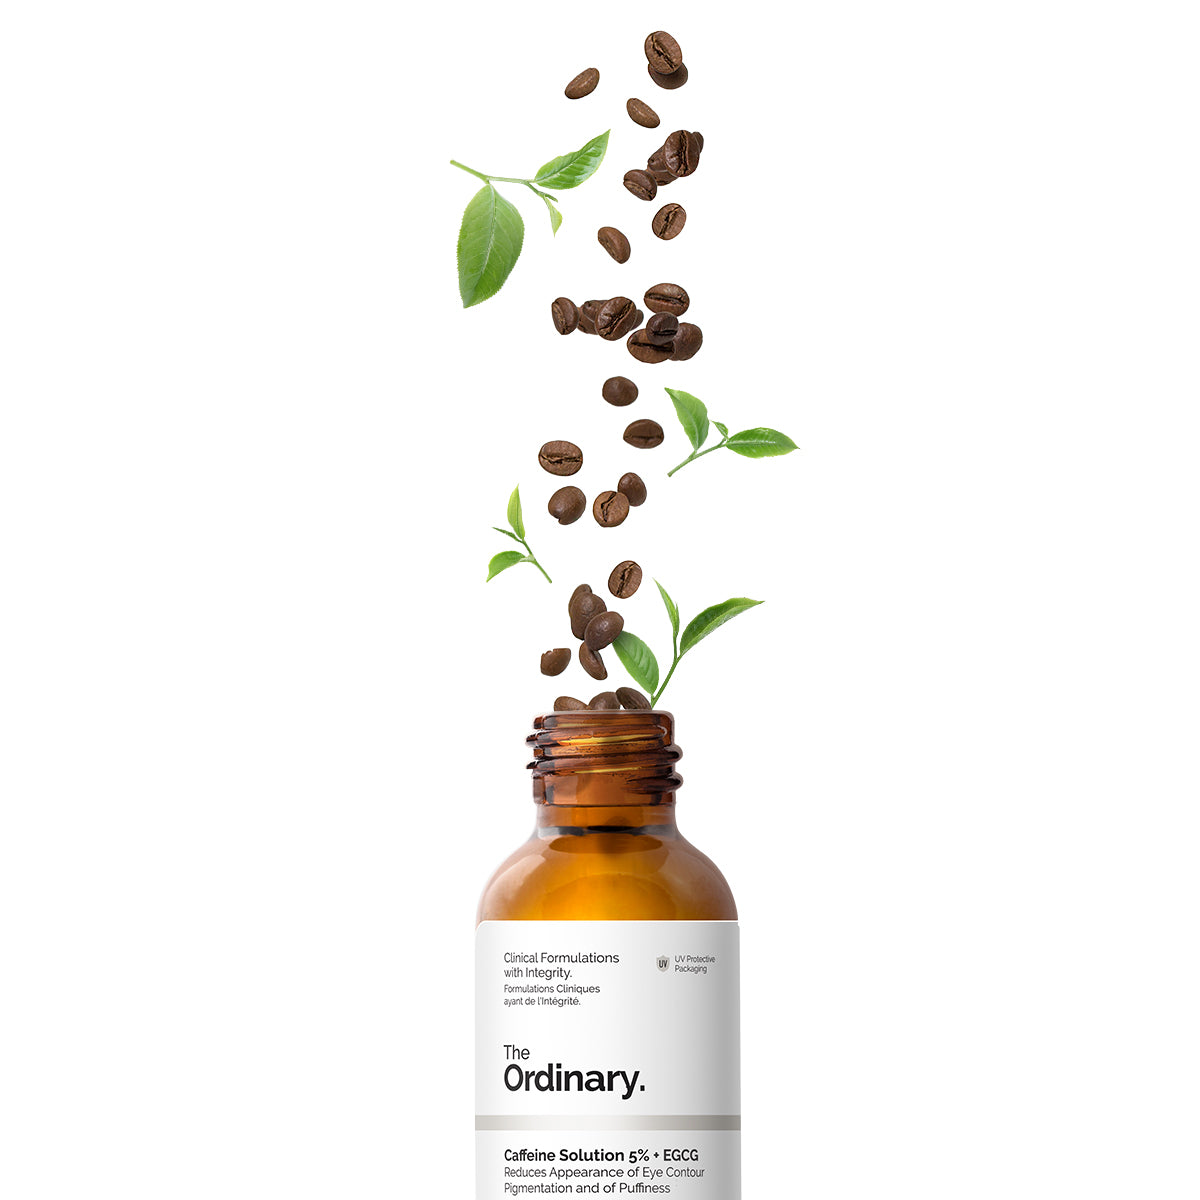 The Ordinary Caffeine Solution 5% + EGCG | New London Pharmacy